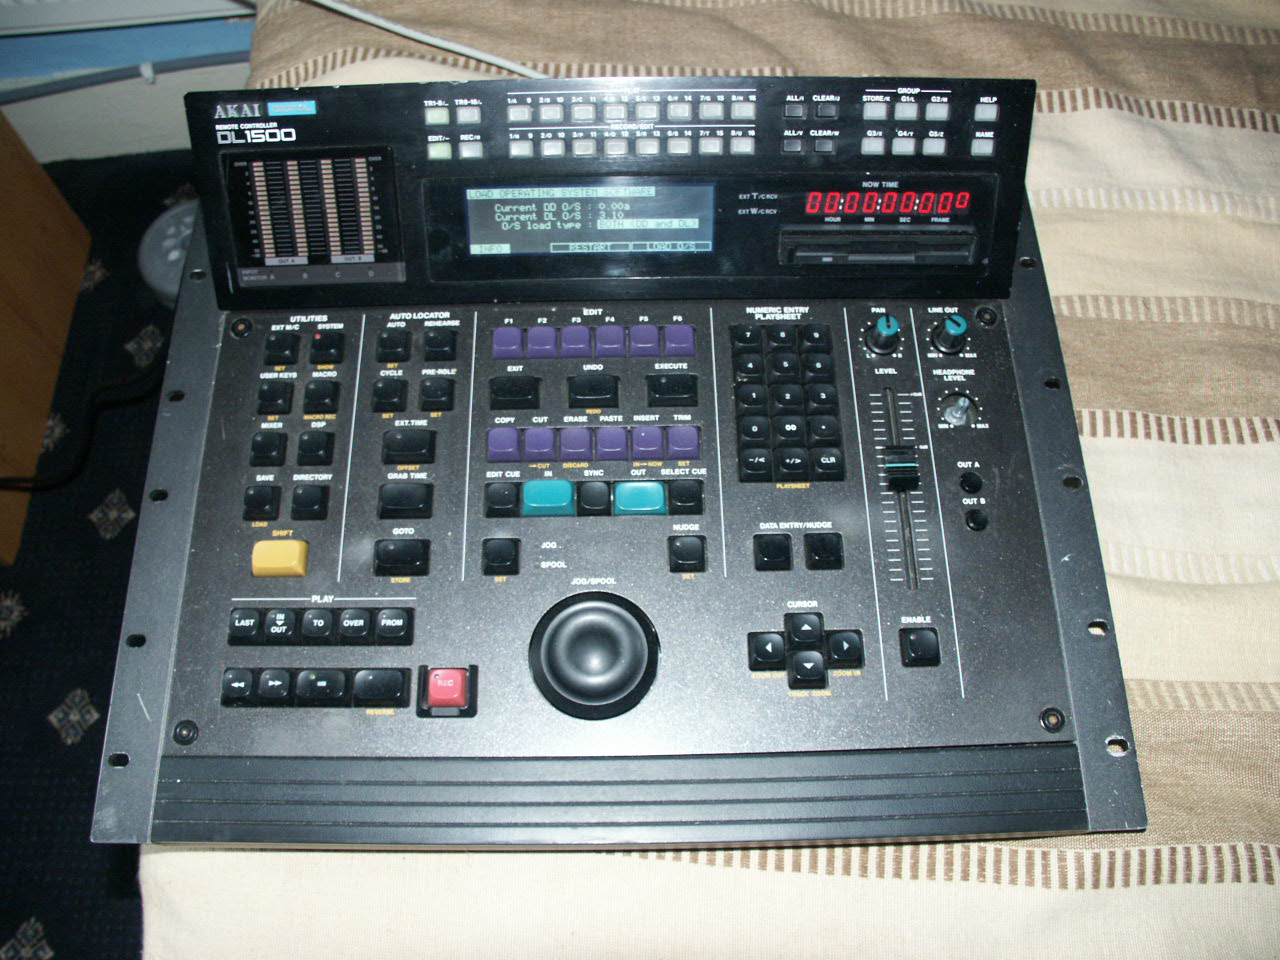 Akai DL1500 Top view